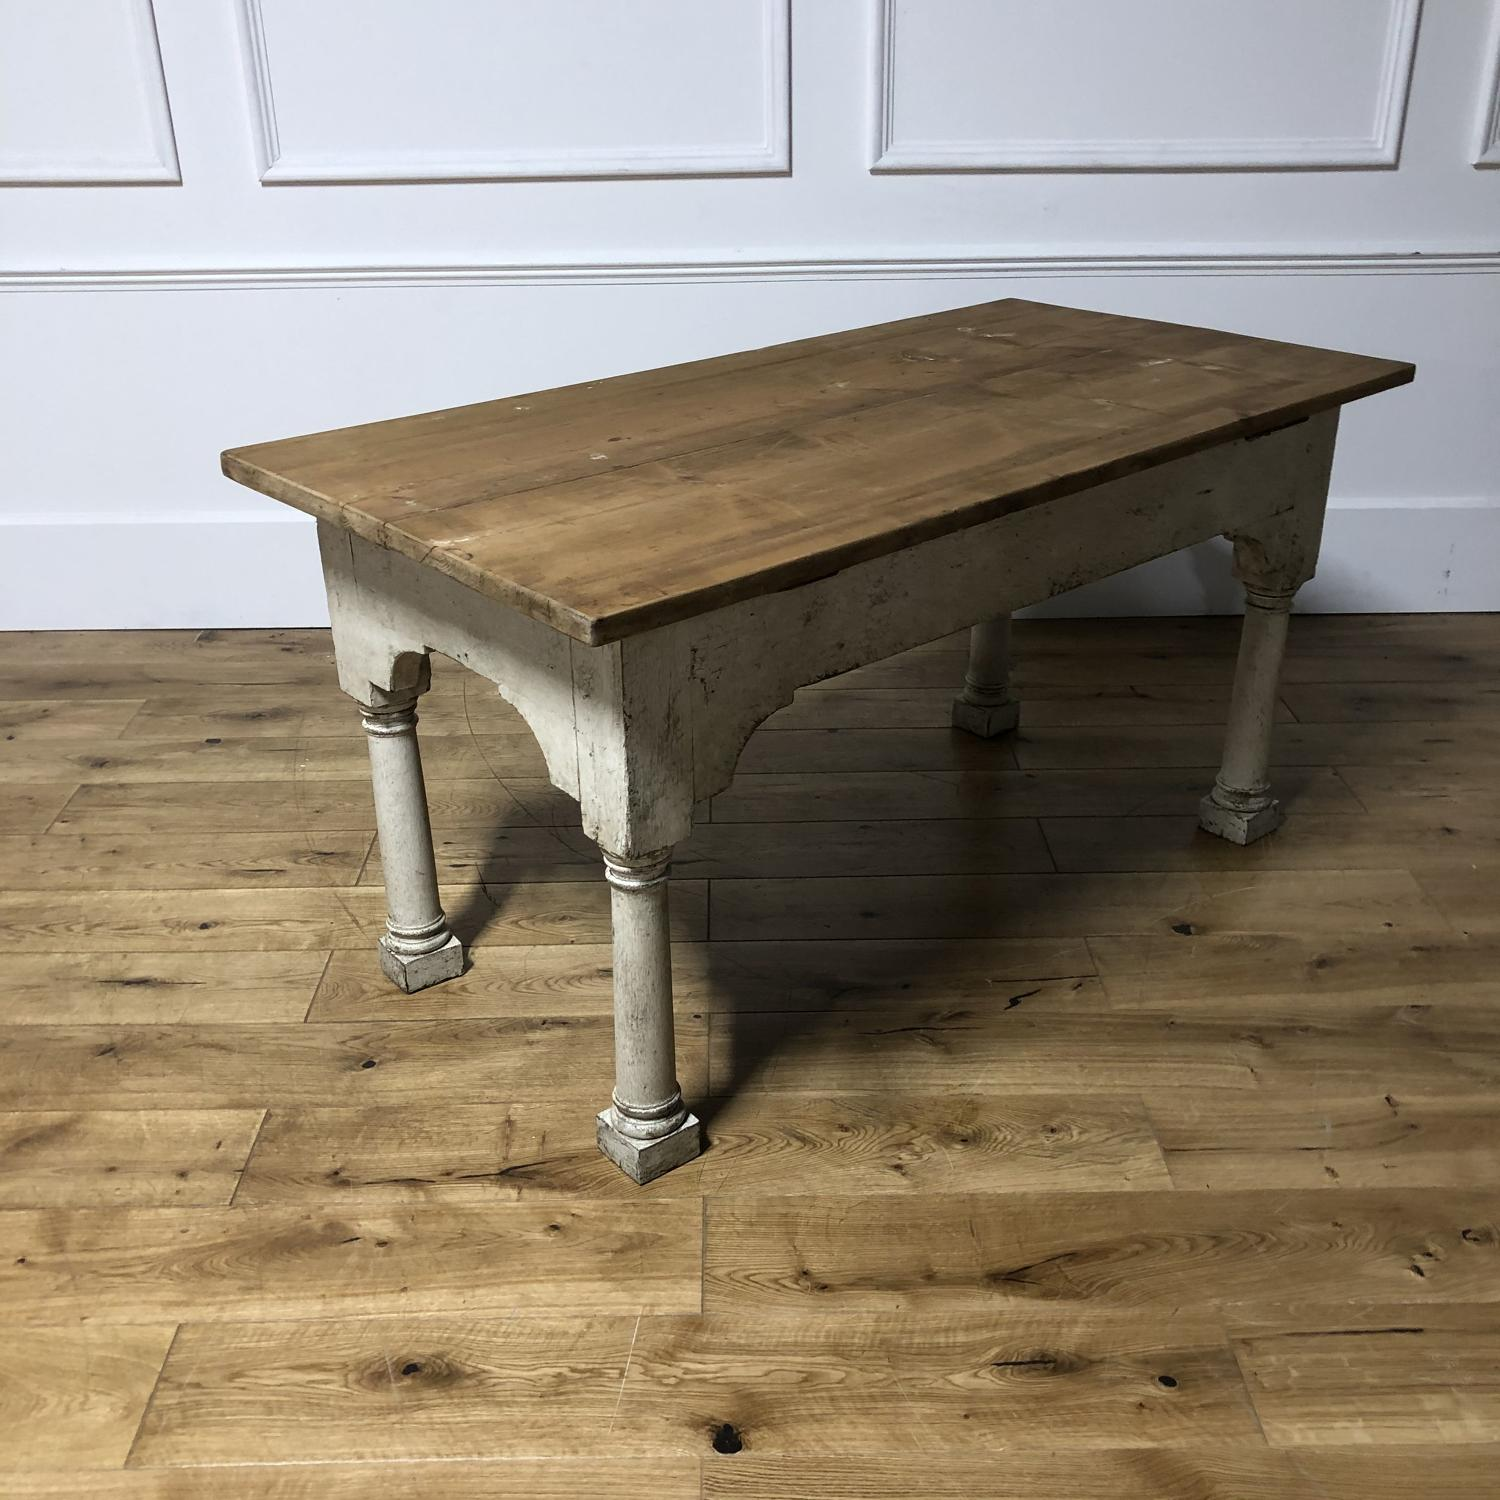 A kitchen prep/serving table